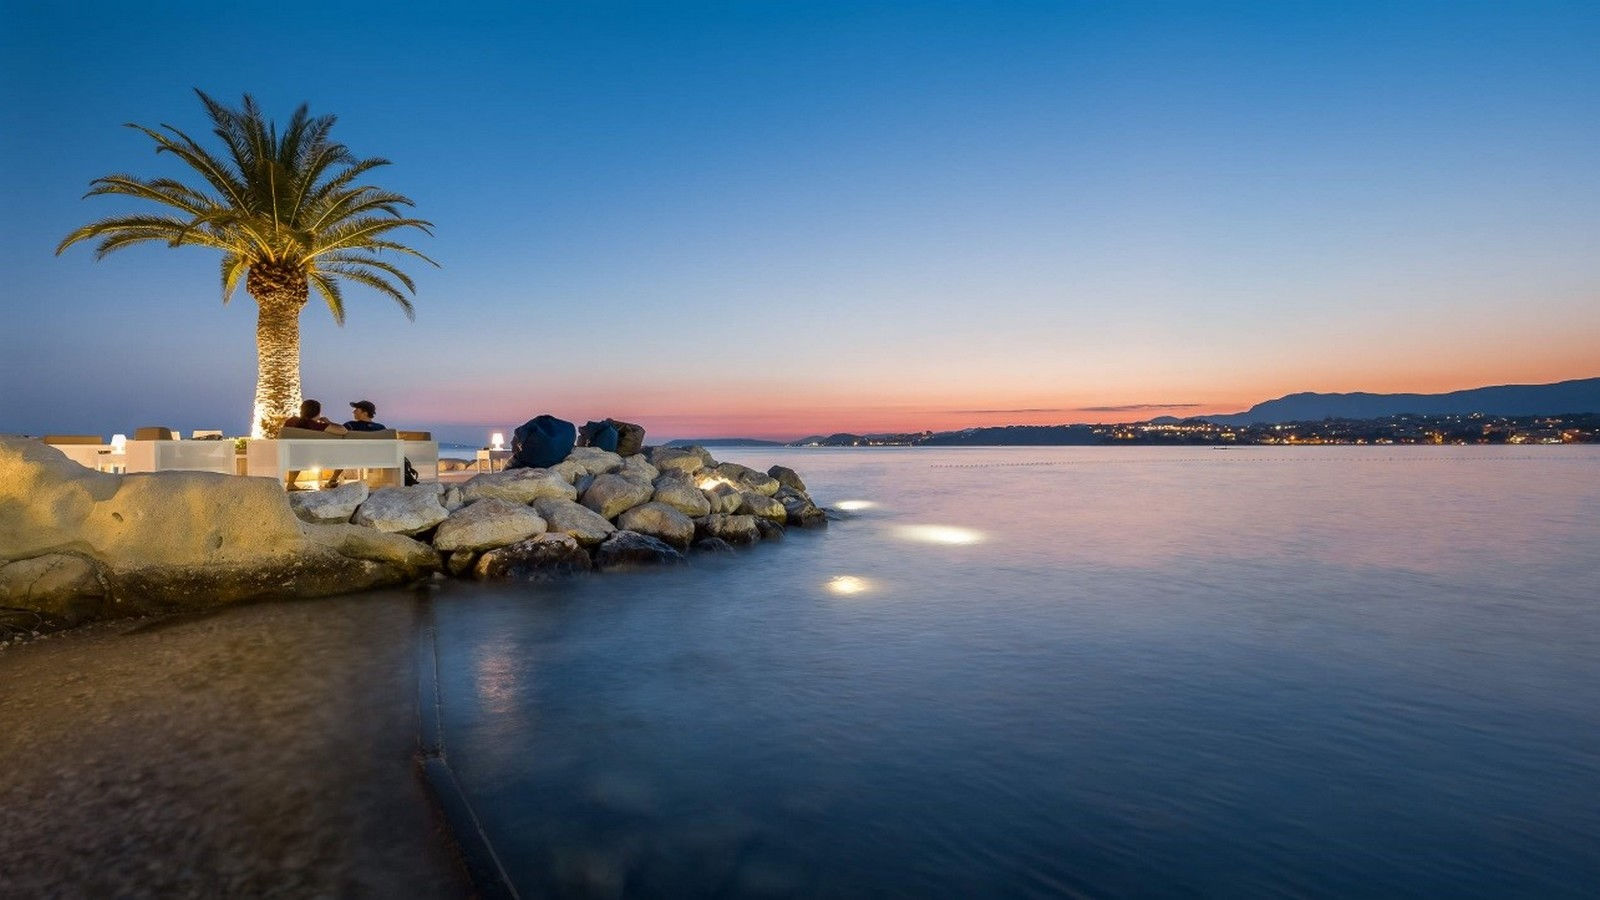 BY THE BEACH AND WATCH THE SUN SETTING OVER THE CALM WATERS OF THE ADRIATIC SEA